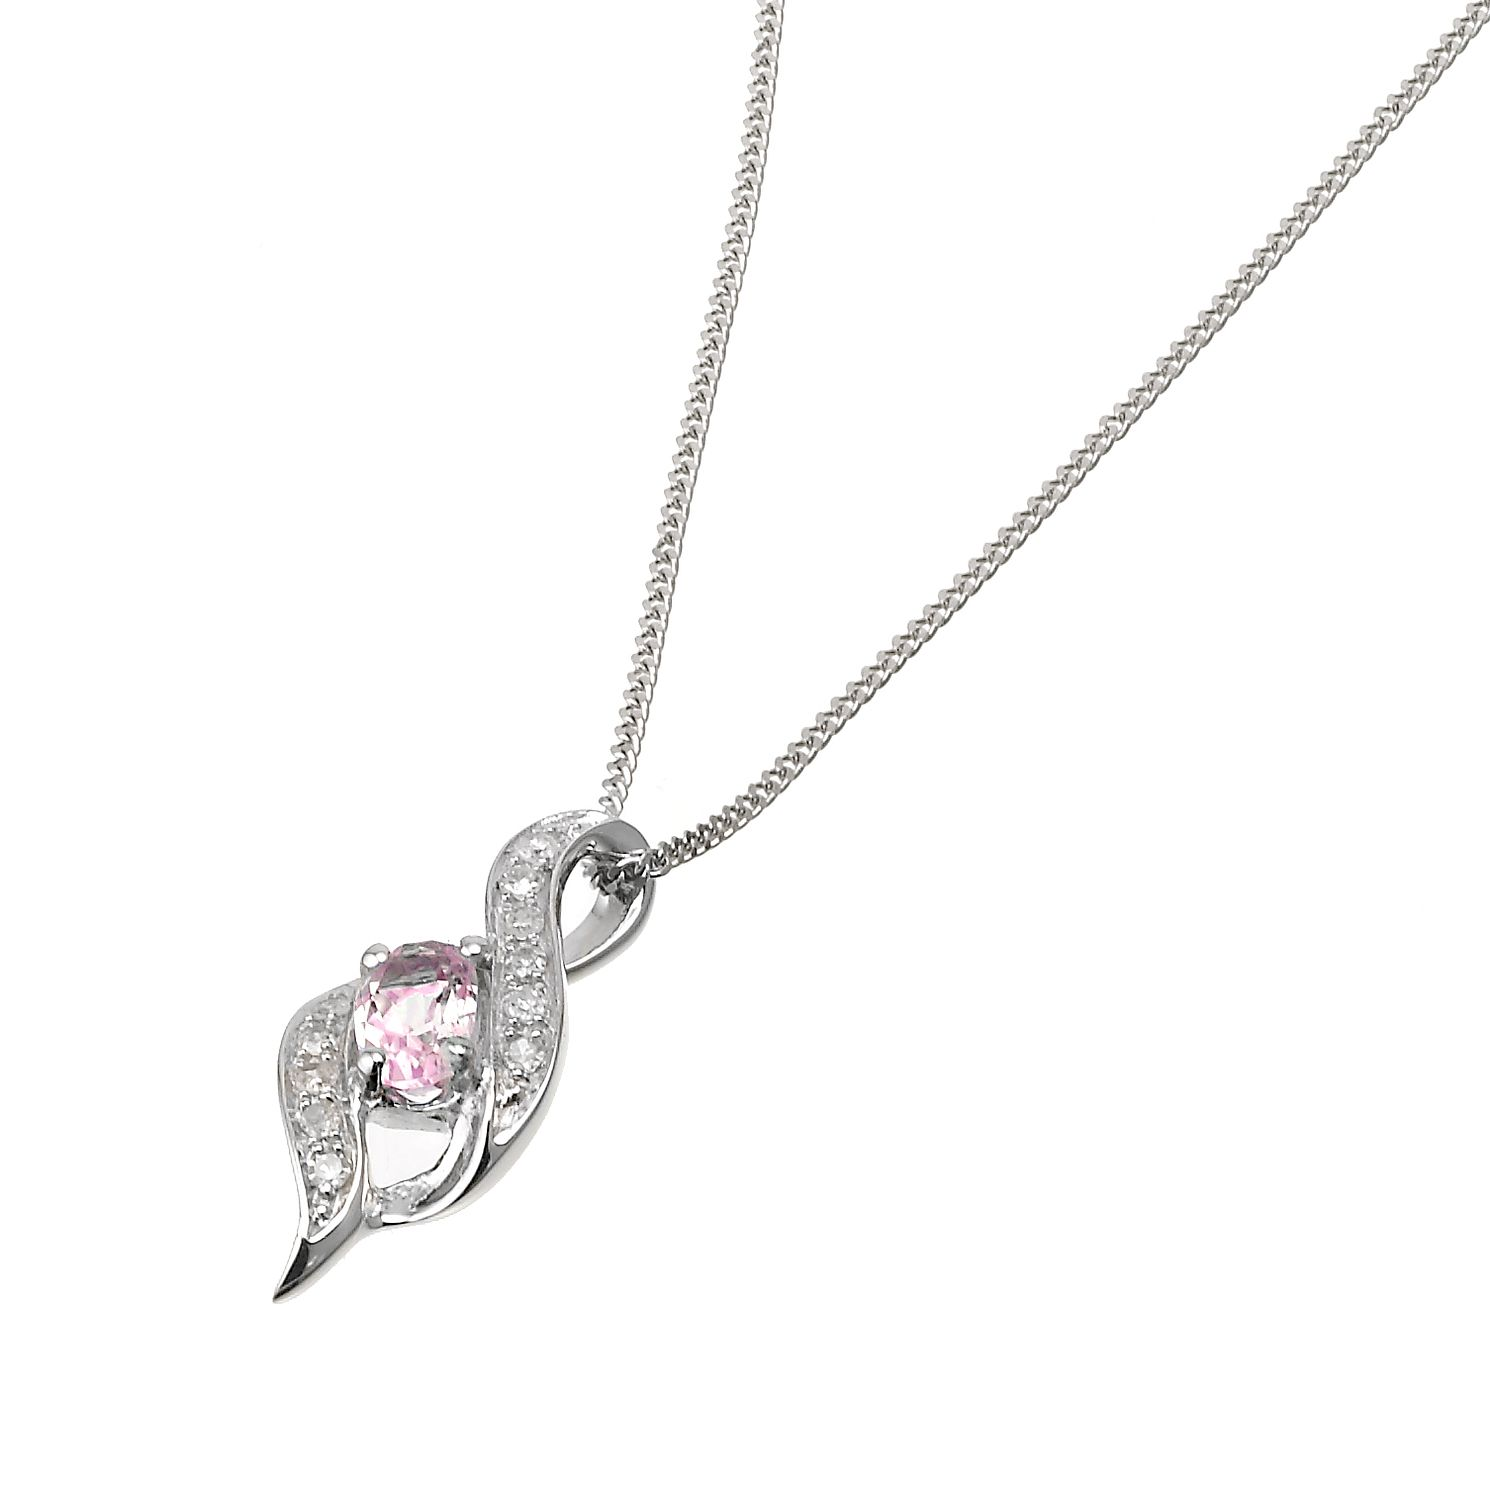 r large love necklace diamond sapphire rose gold small evan sydney pink